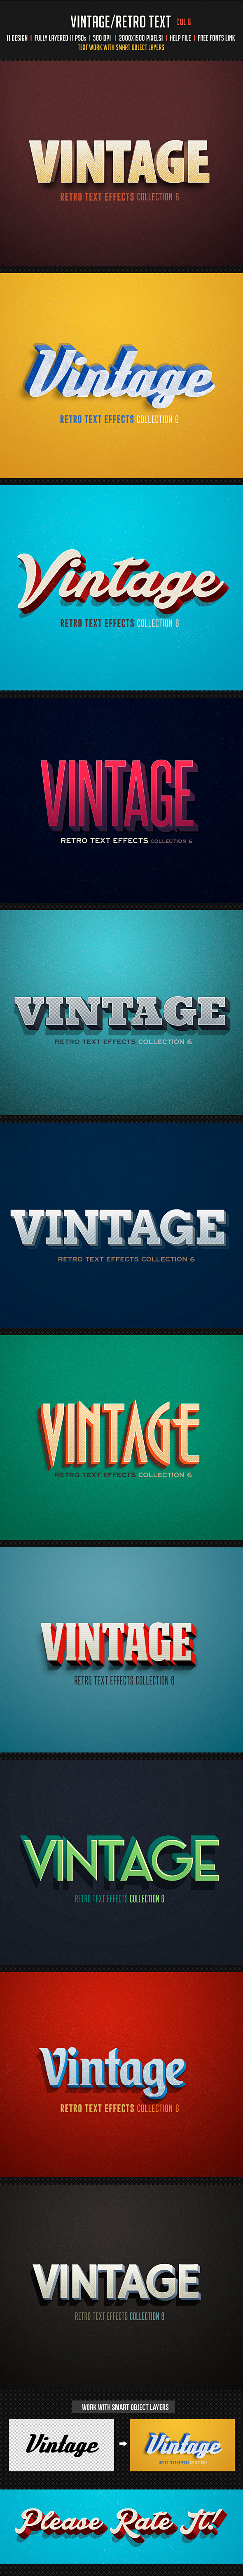 Vintage/Retro Text Col 6 - Text Effects Actions